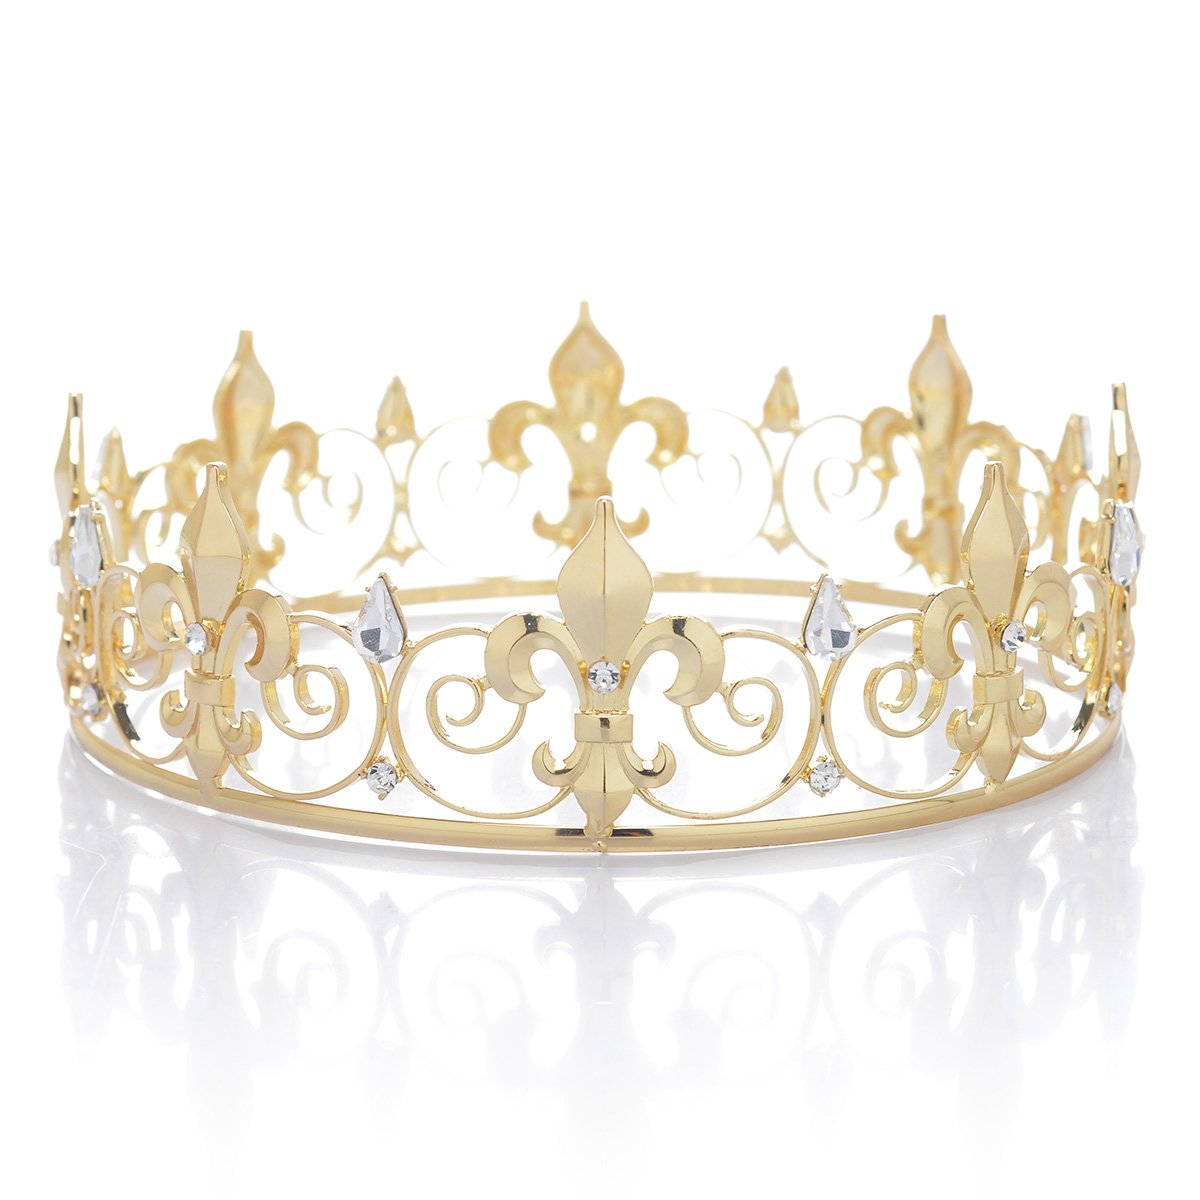 SWEETV Royal Full King Crown - Metal Crowns and Tiaras for Men Prom King Party Hats Costume Accessories, Gold by SWEETV